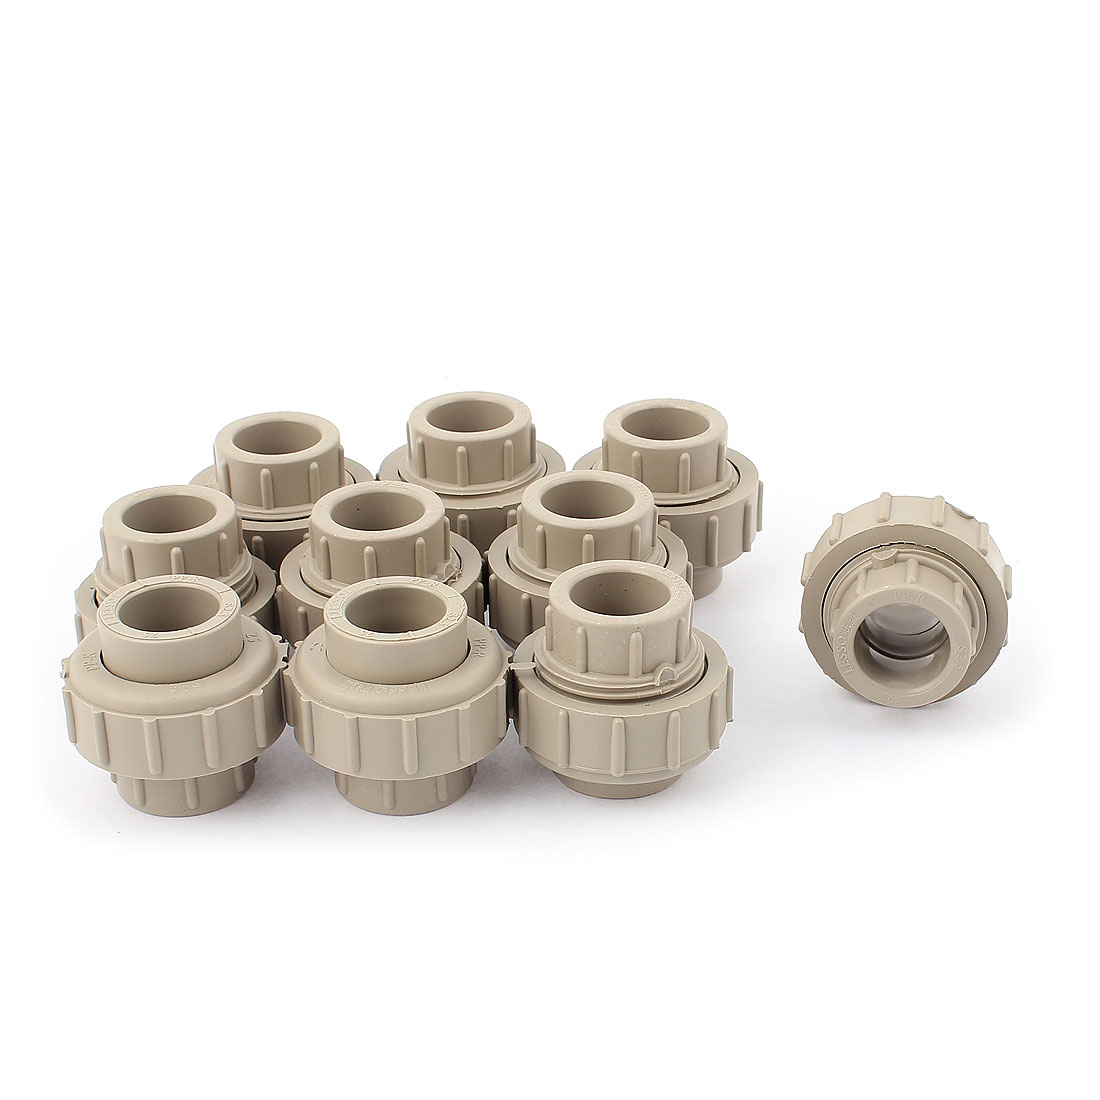 25mm Inner Dia Adjustable Water Liduqid PPR Pipe Fitting Connecting 10pcs